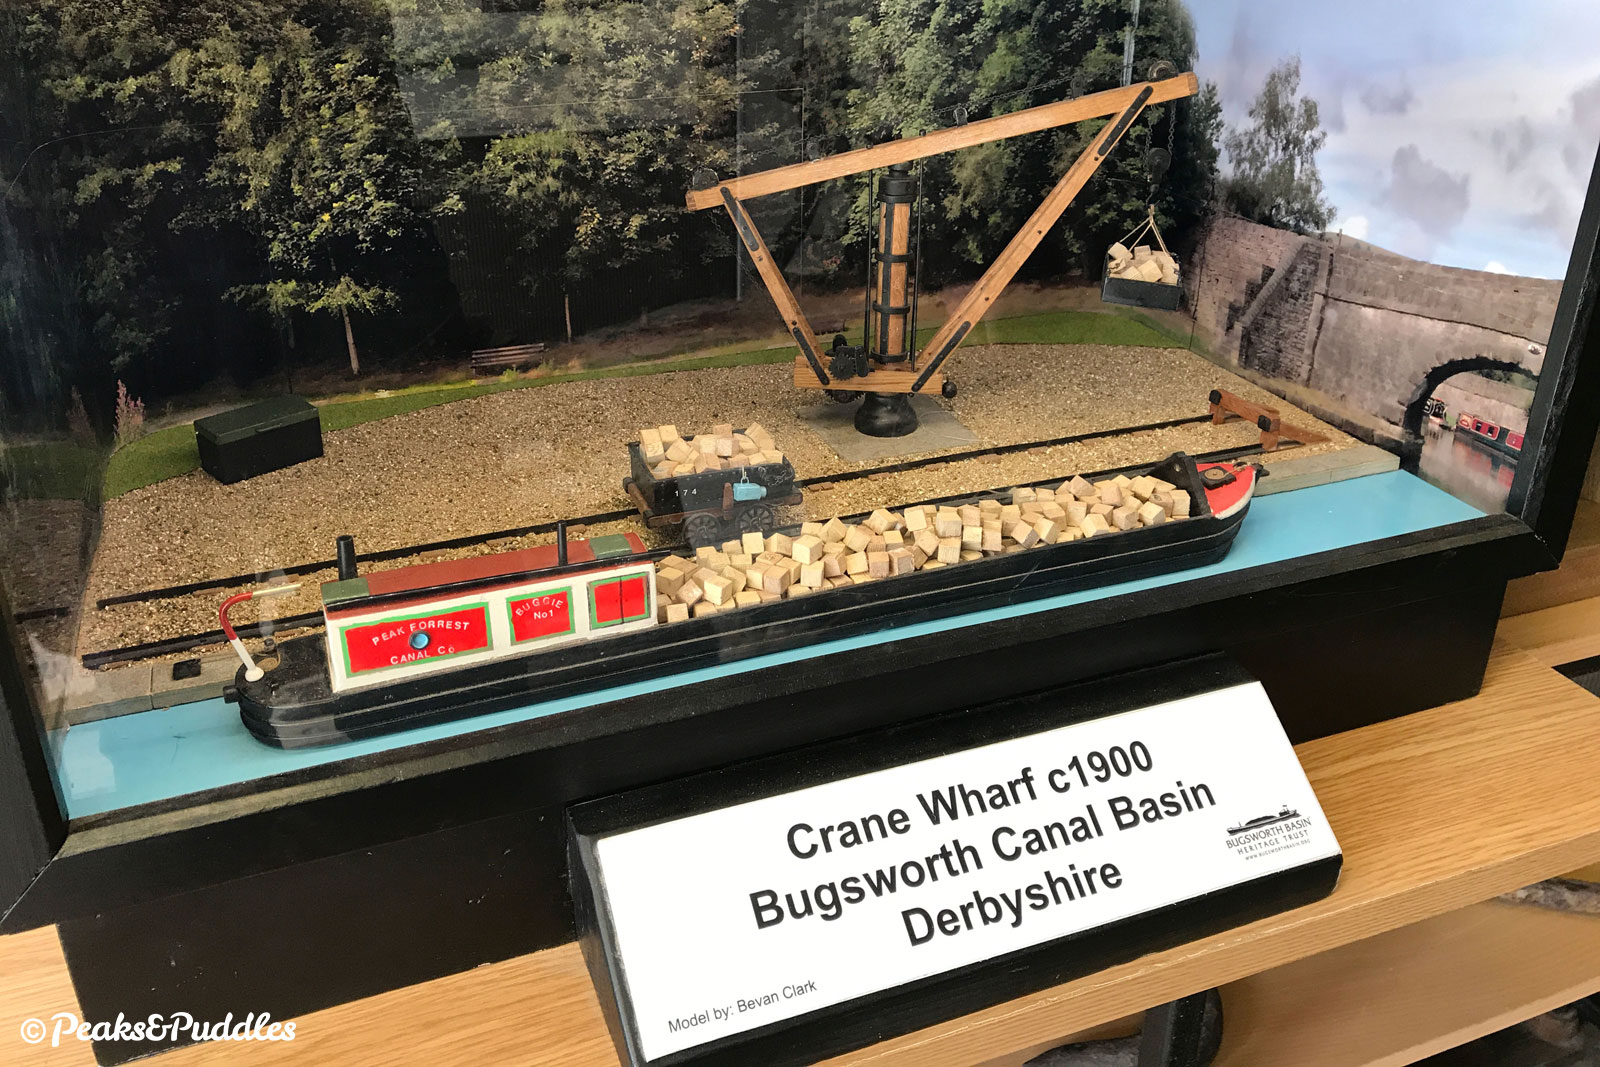 The exhibition housed in a temporary container at Bugsworth Basin is well worth a look when open.